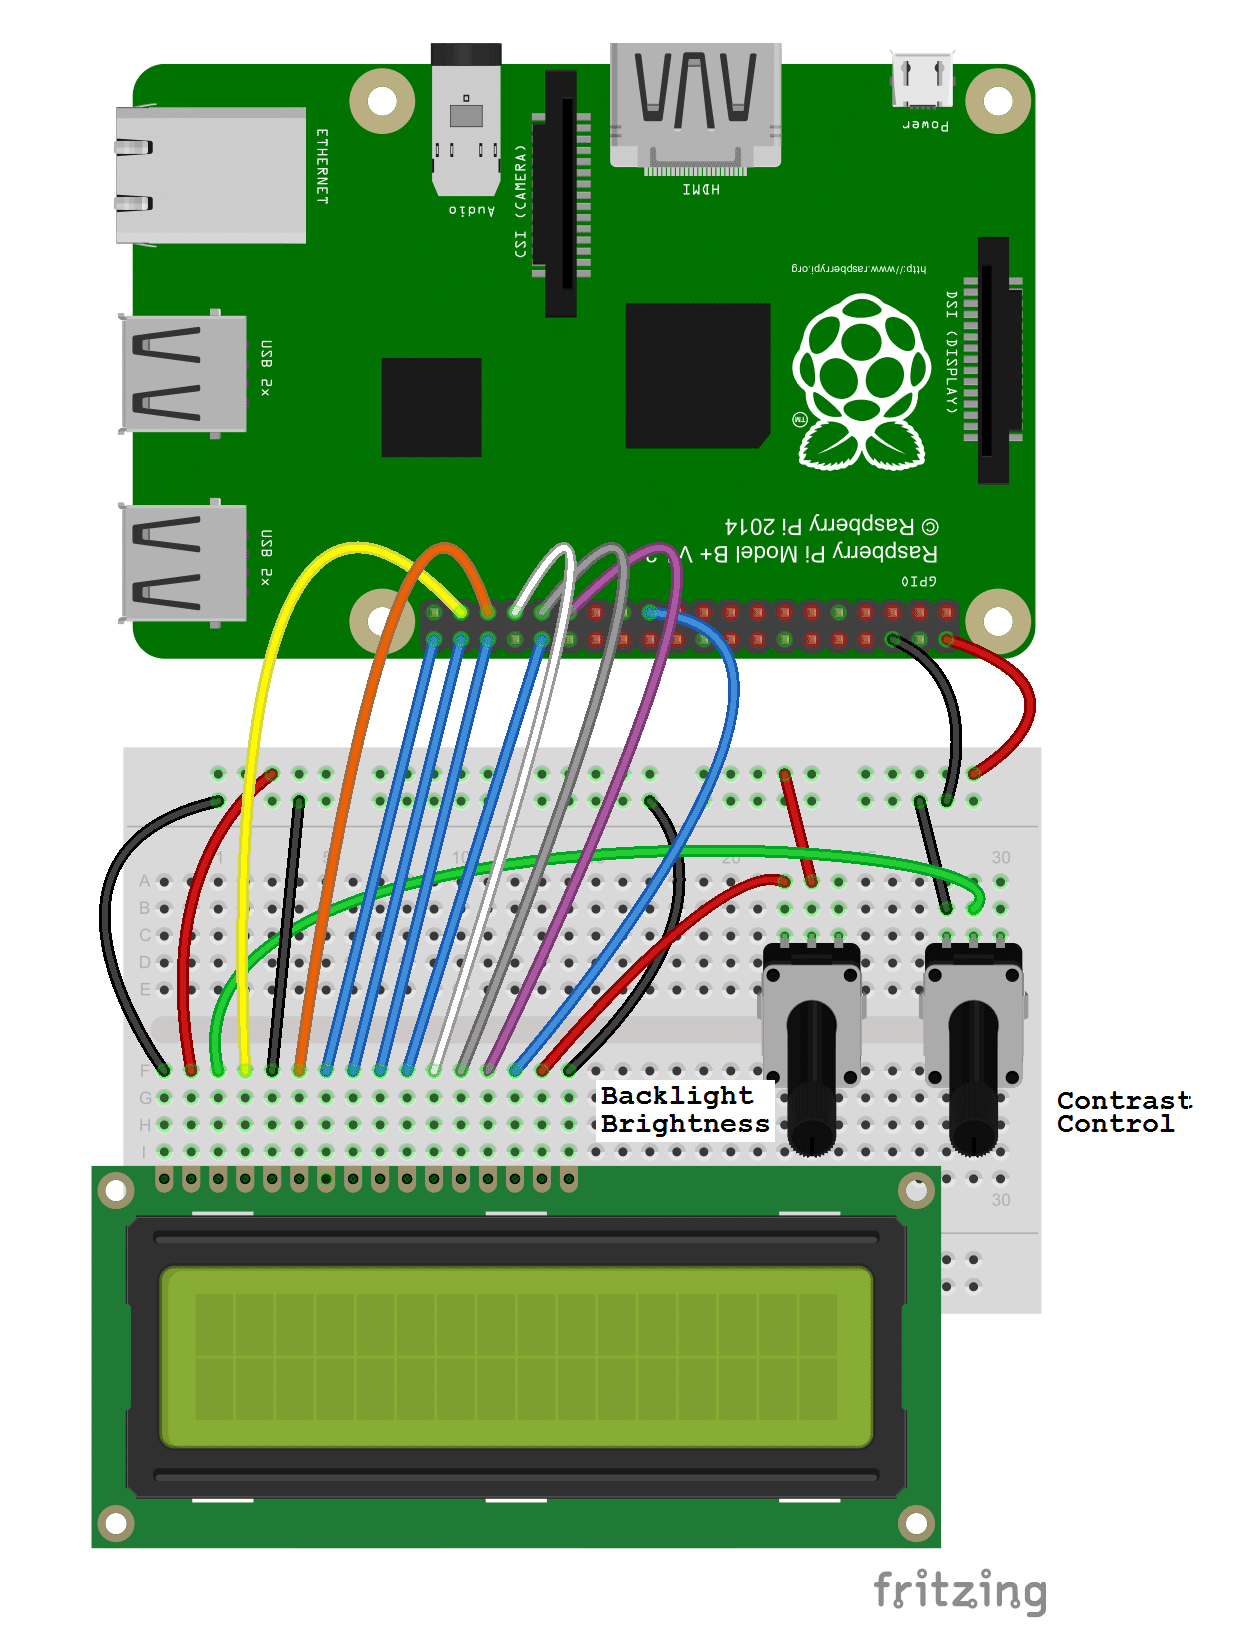 How To Setup An Lcd On The Raspberry Pi And Program It With Python Input Interfacing Circuits Connect Real World 8 Bit Mode Connection Diagram